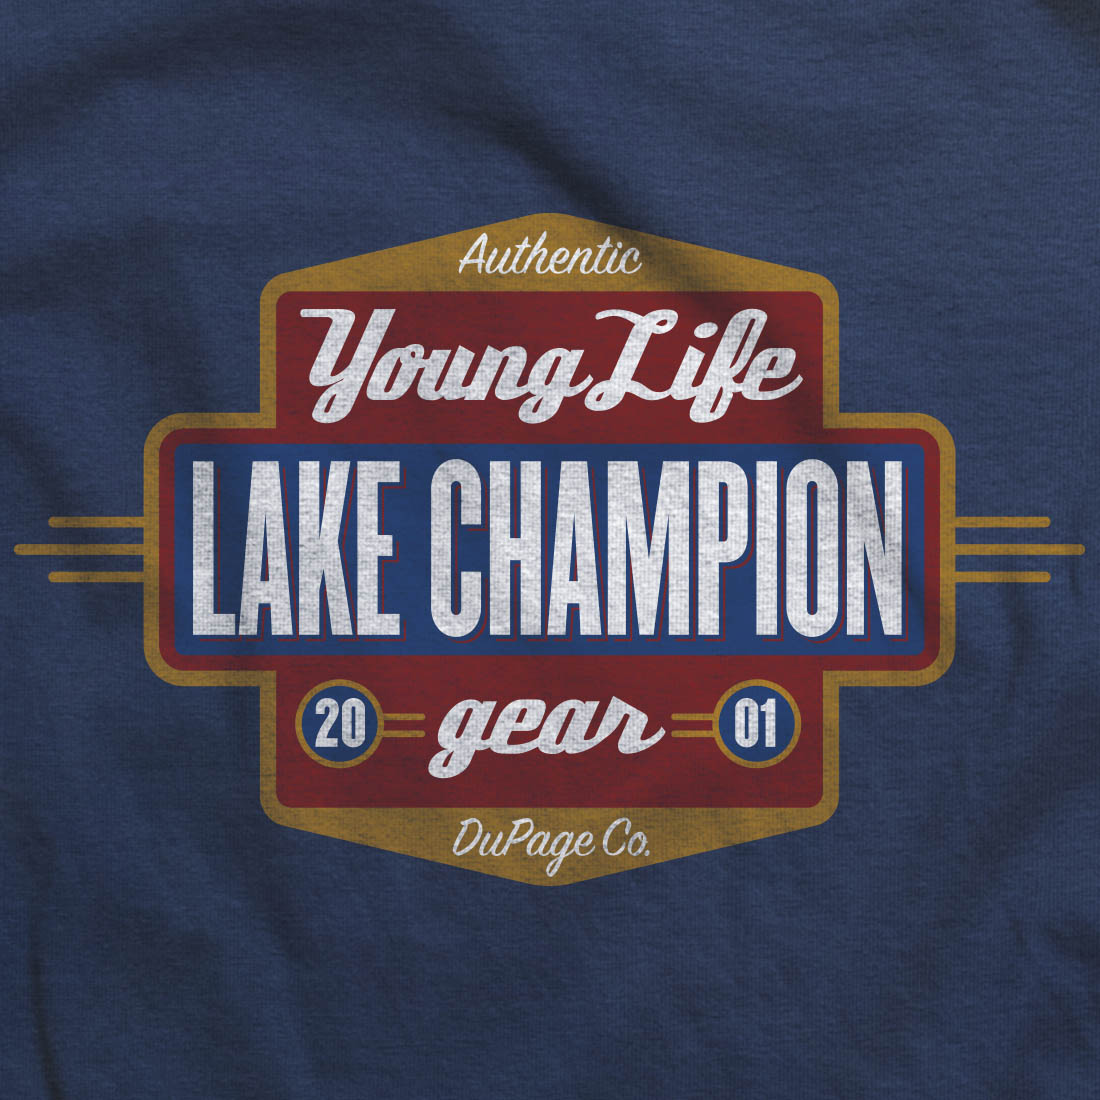 Tshirt-YL-LakeChampion